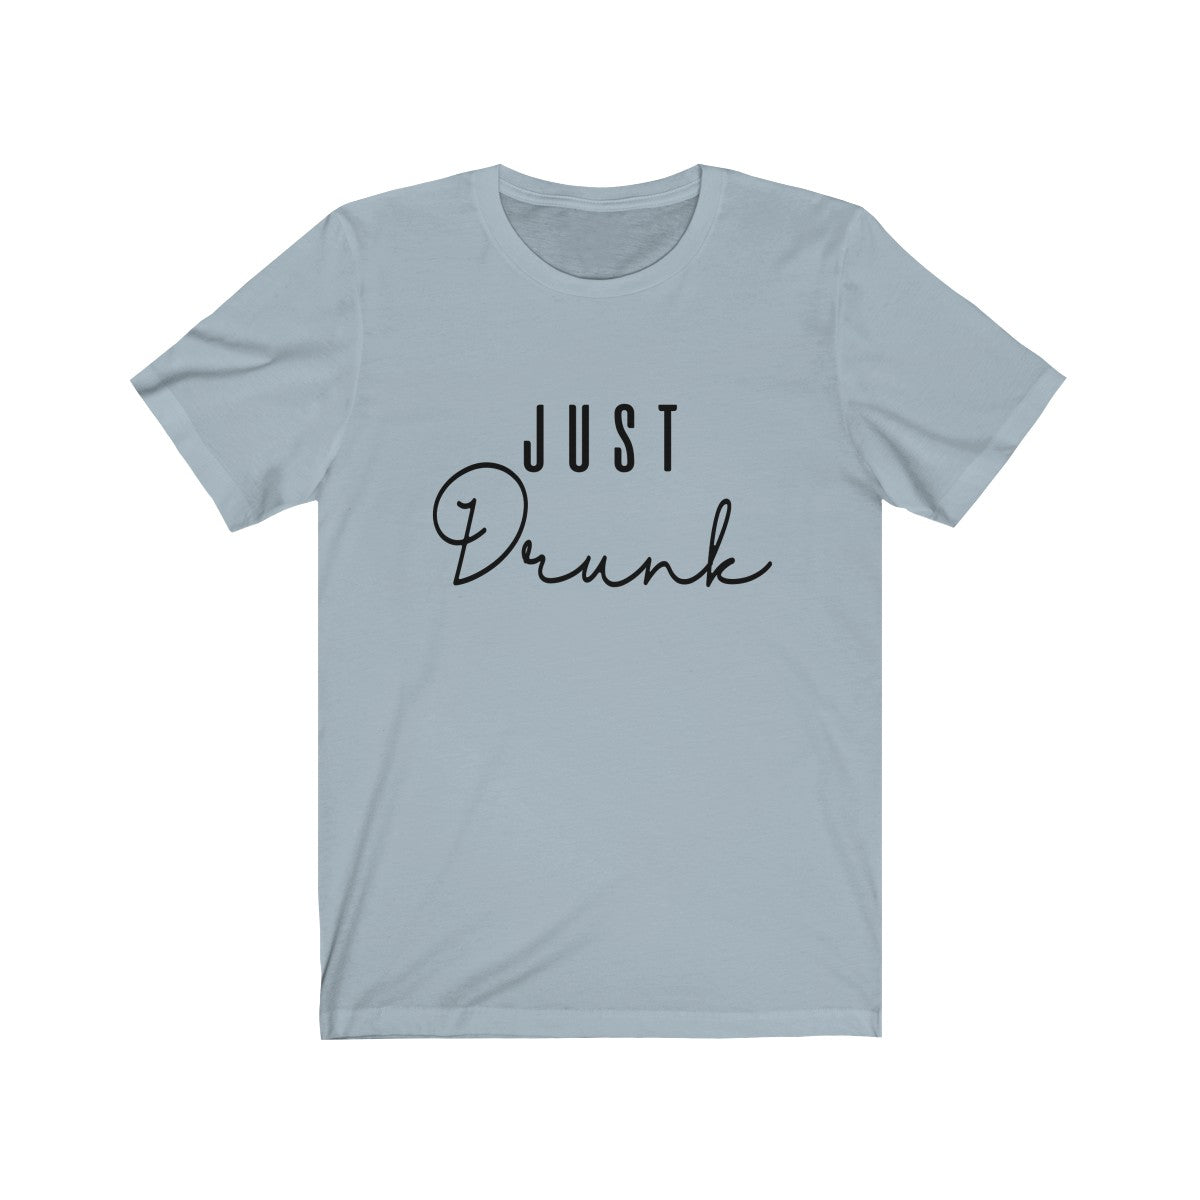 Unisex Jersey Short Sleeve Tee Just Drunk Black - elrileygifts